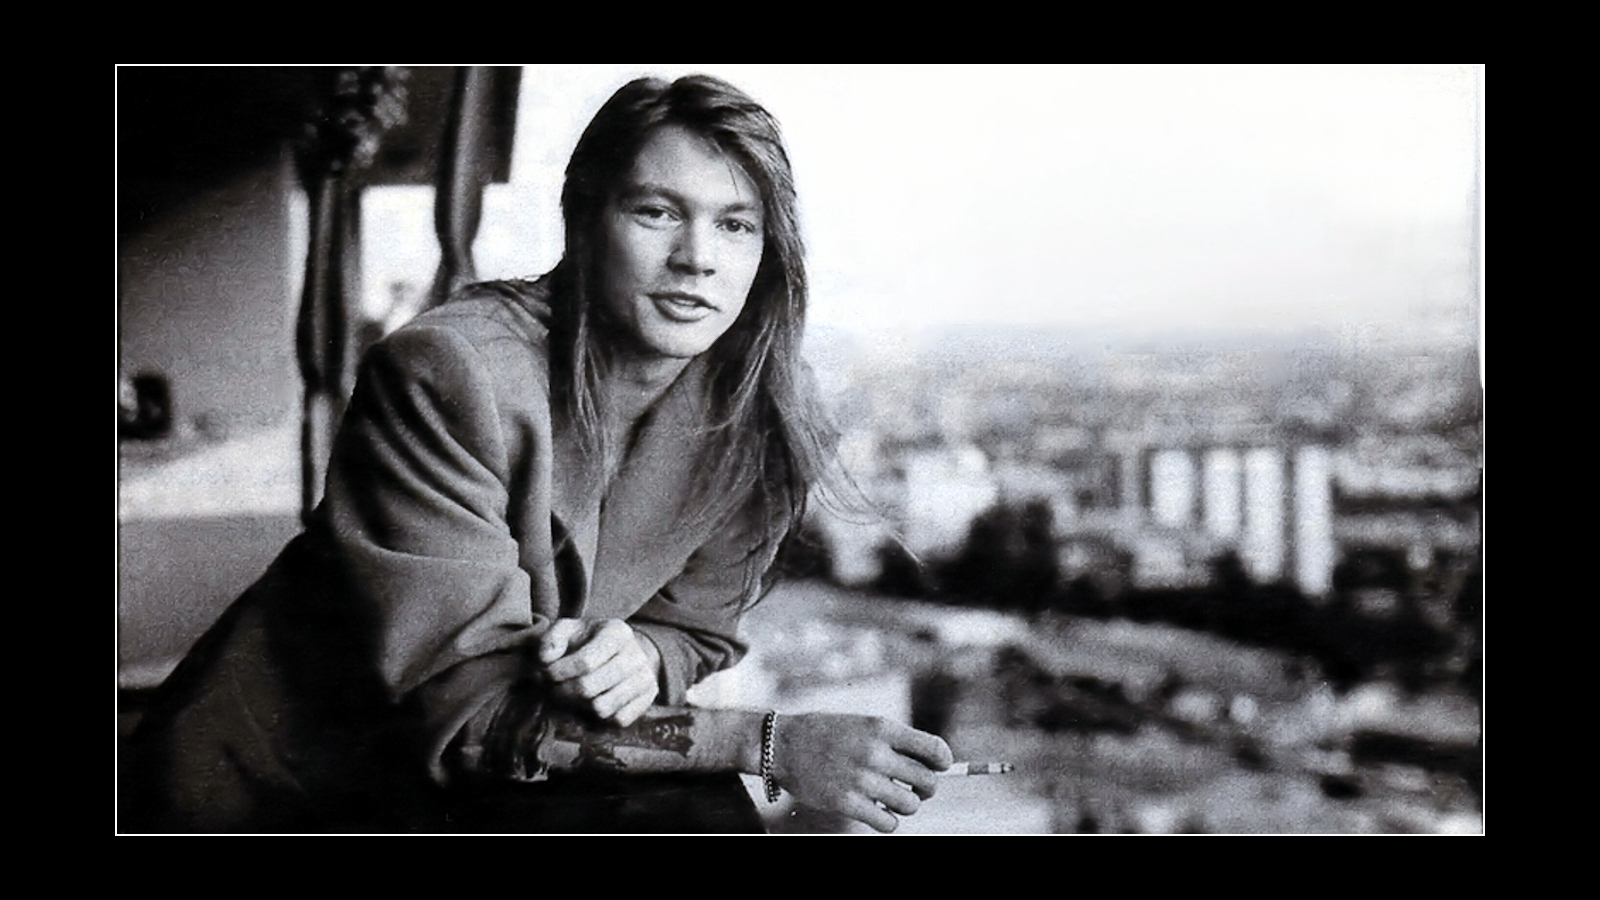 Axl Rose in the 80s 바탕화면